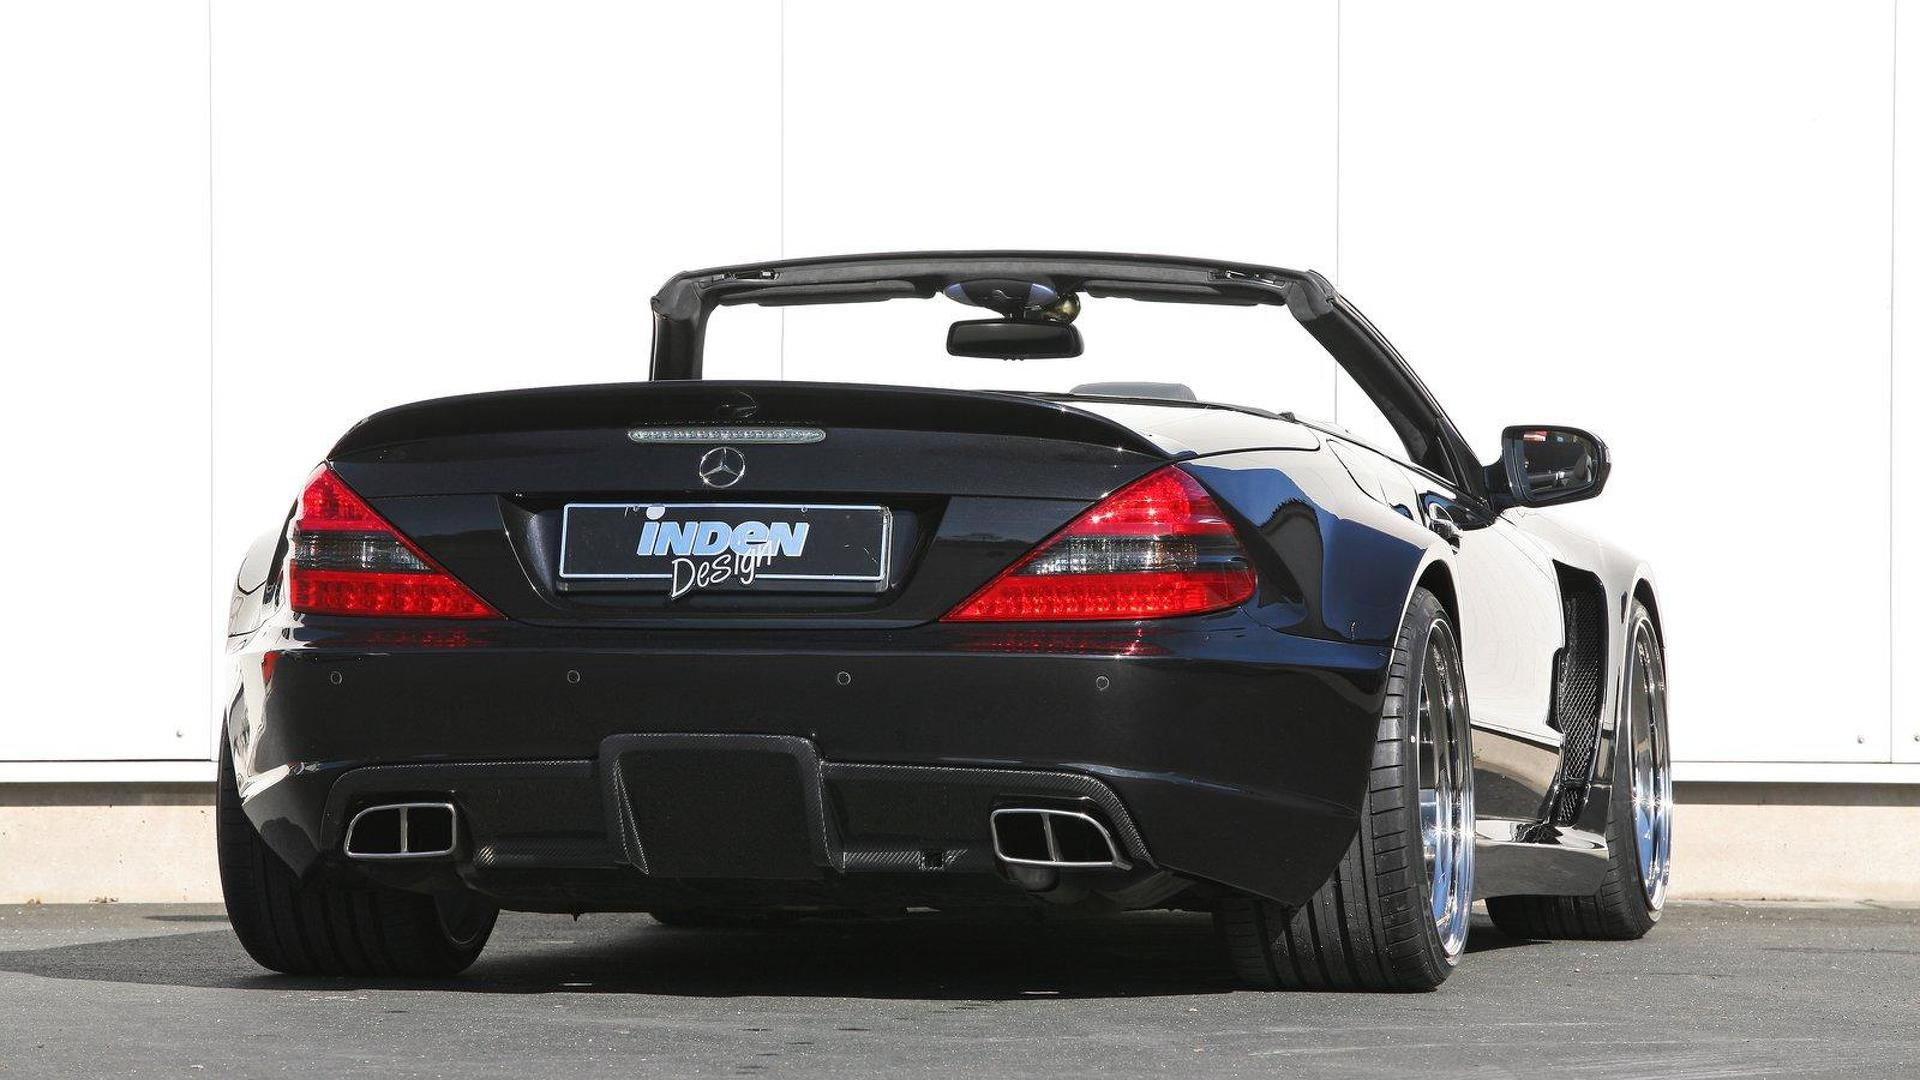 Mercedes Benz Sl 65 Amg By Inden Design Images, Photos, Reviews